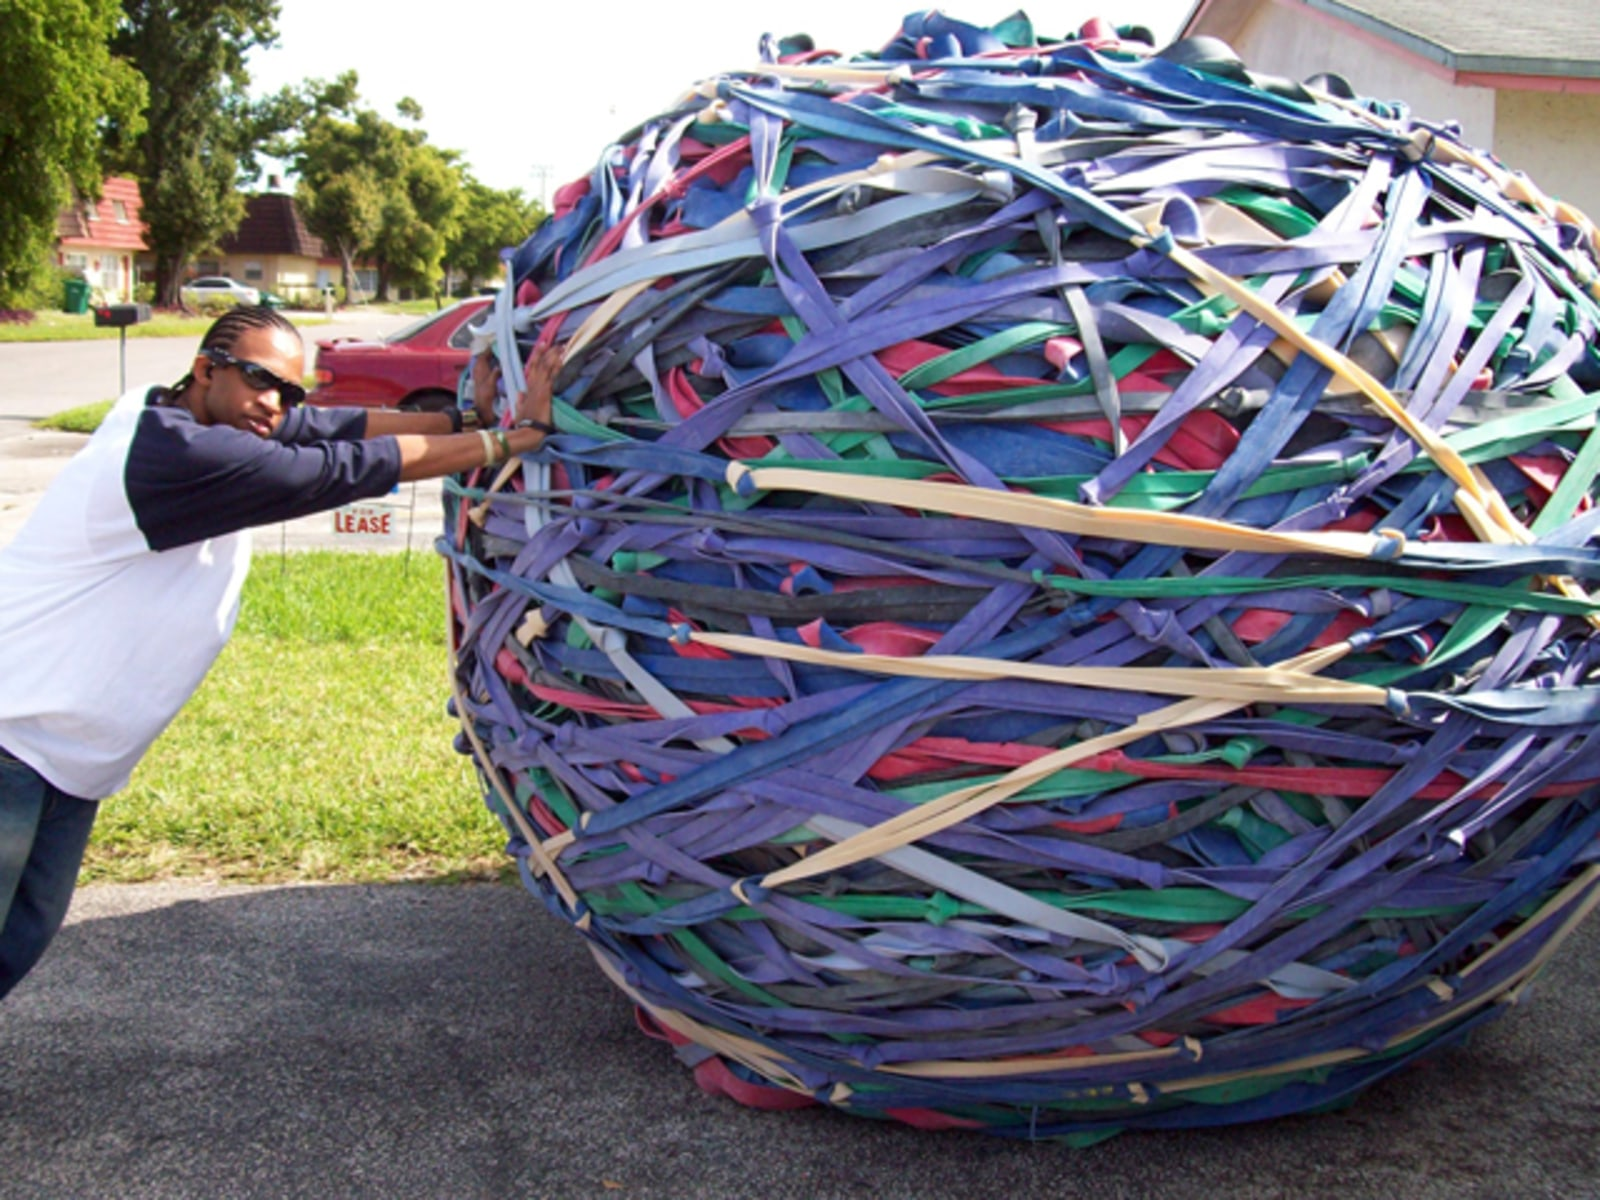 Image: World's largest rubber band ball